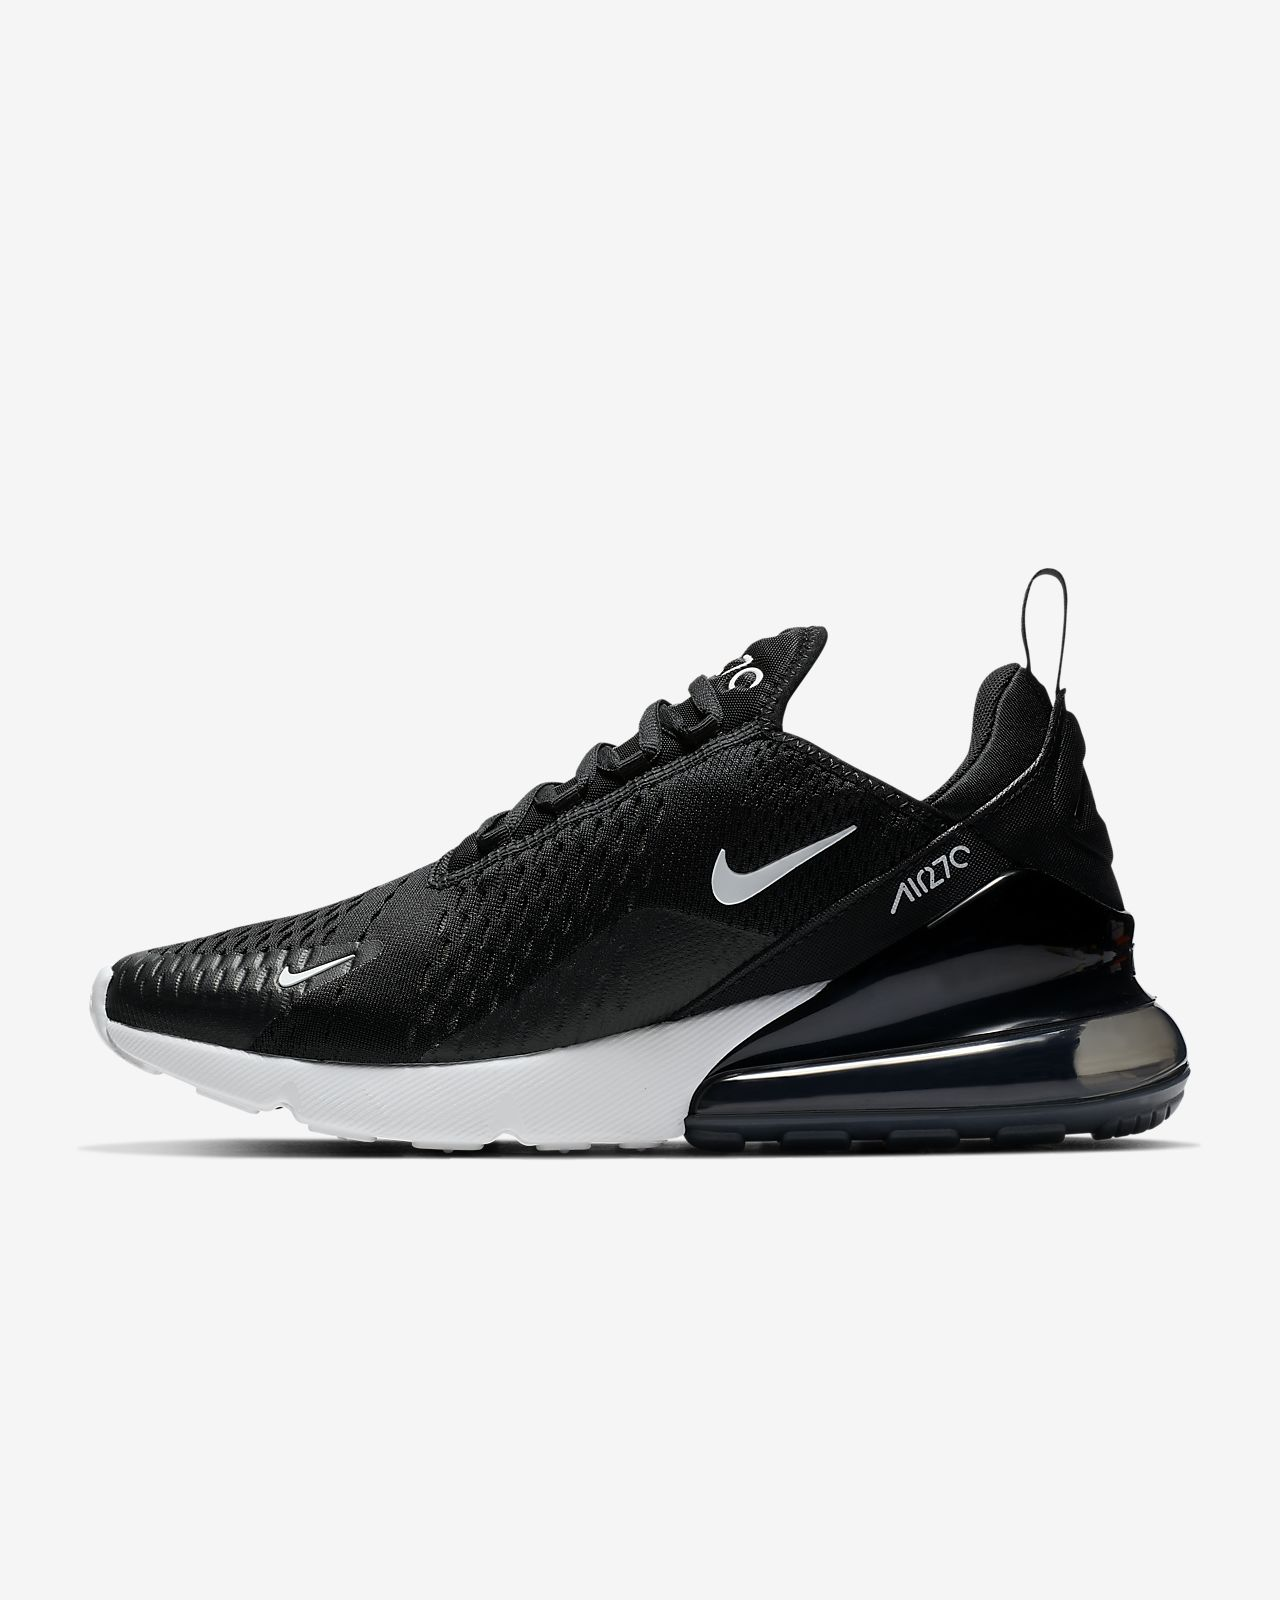 shades of wide varieties good out x Chaussure Nike Air Max 270 pour Femme. Nike CA